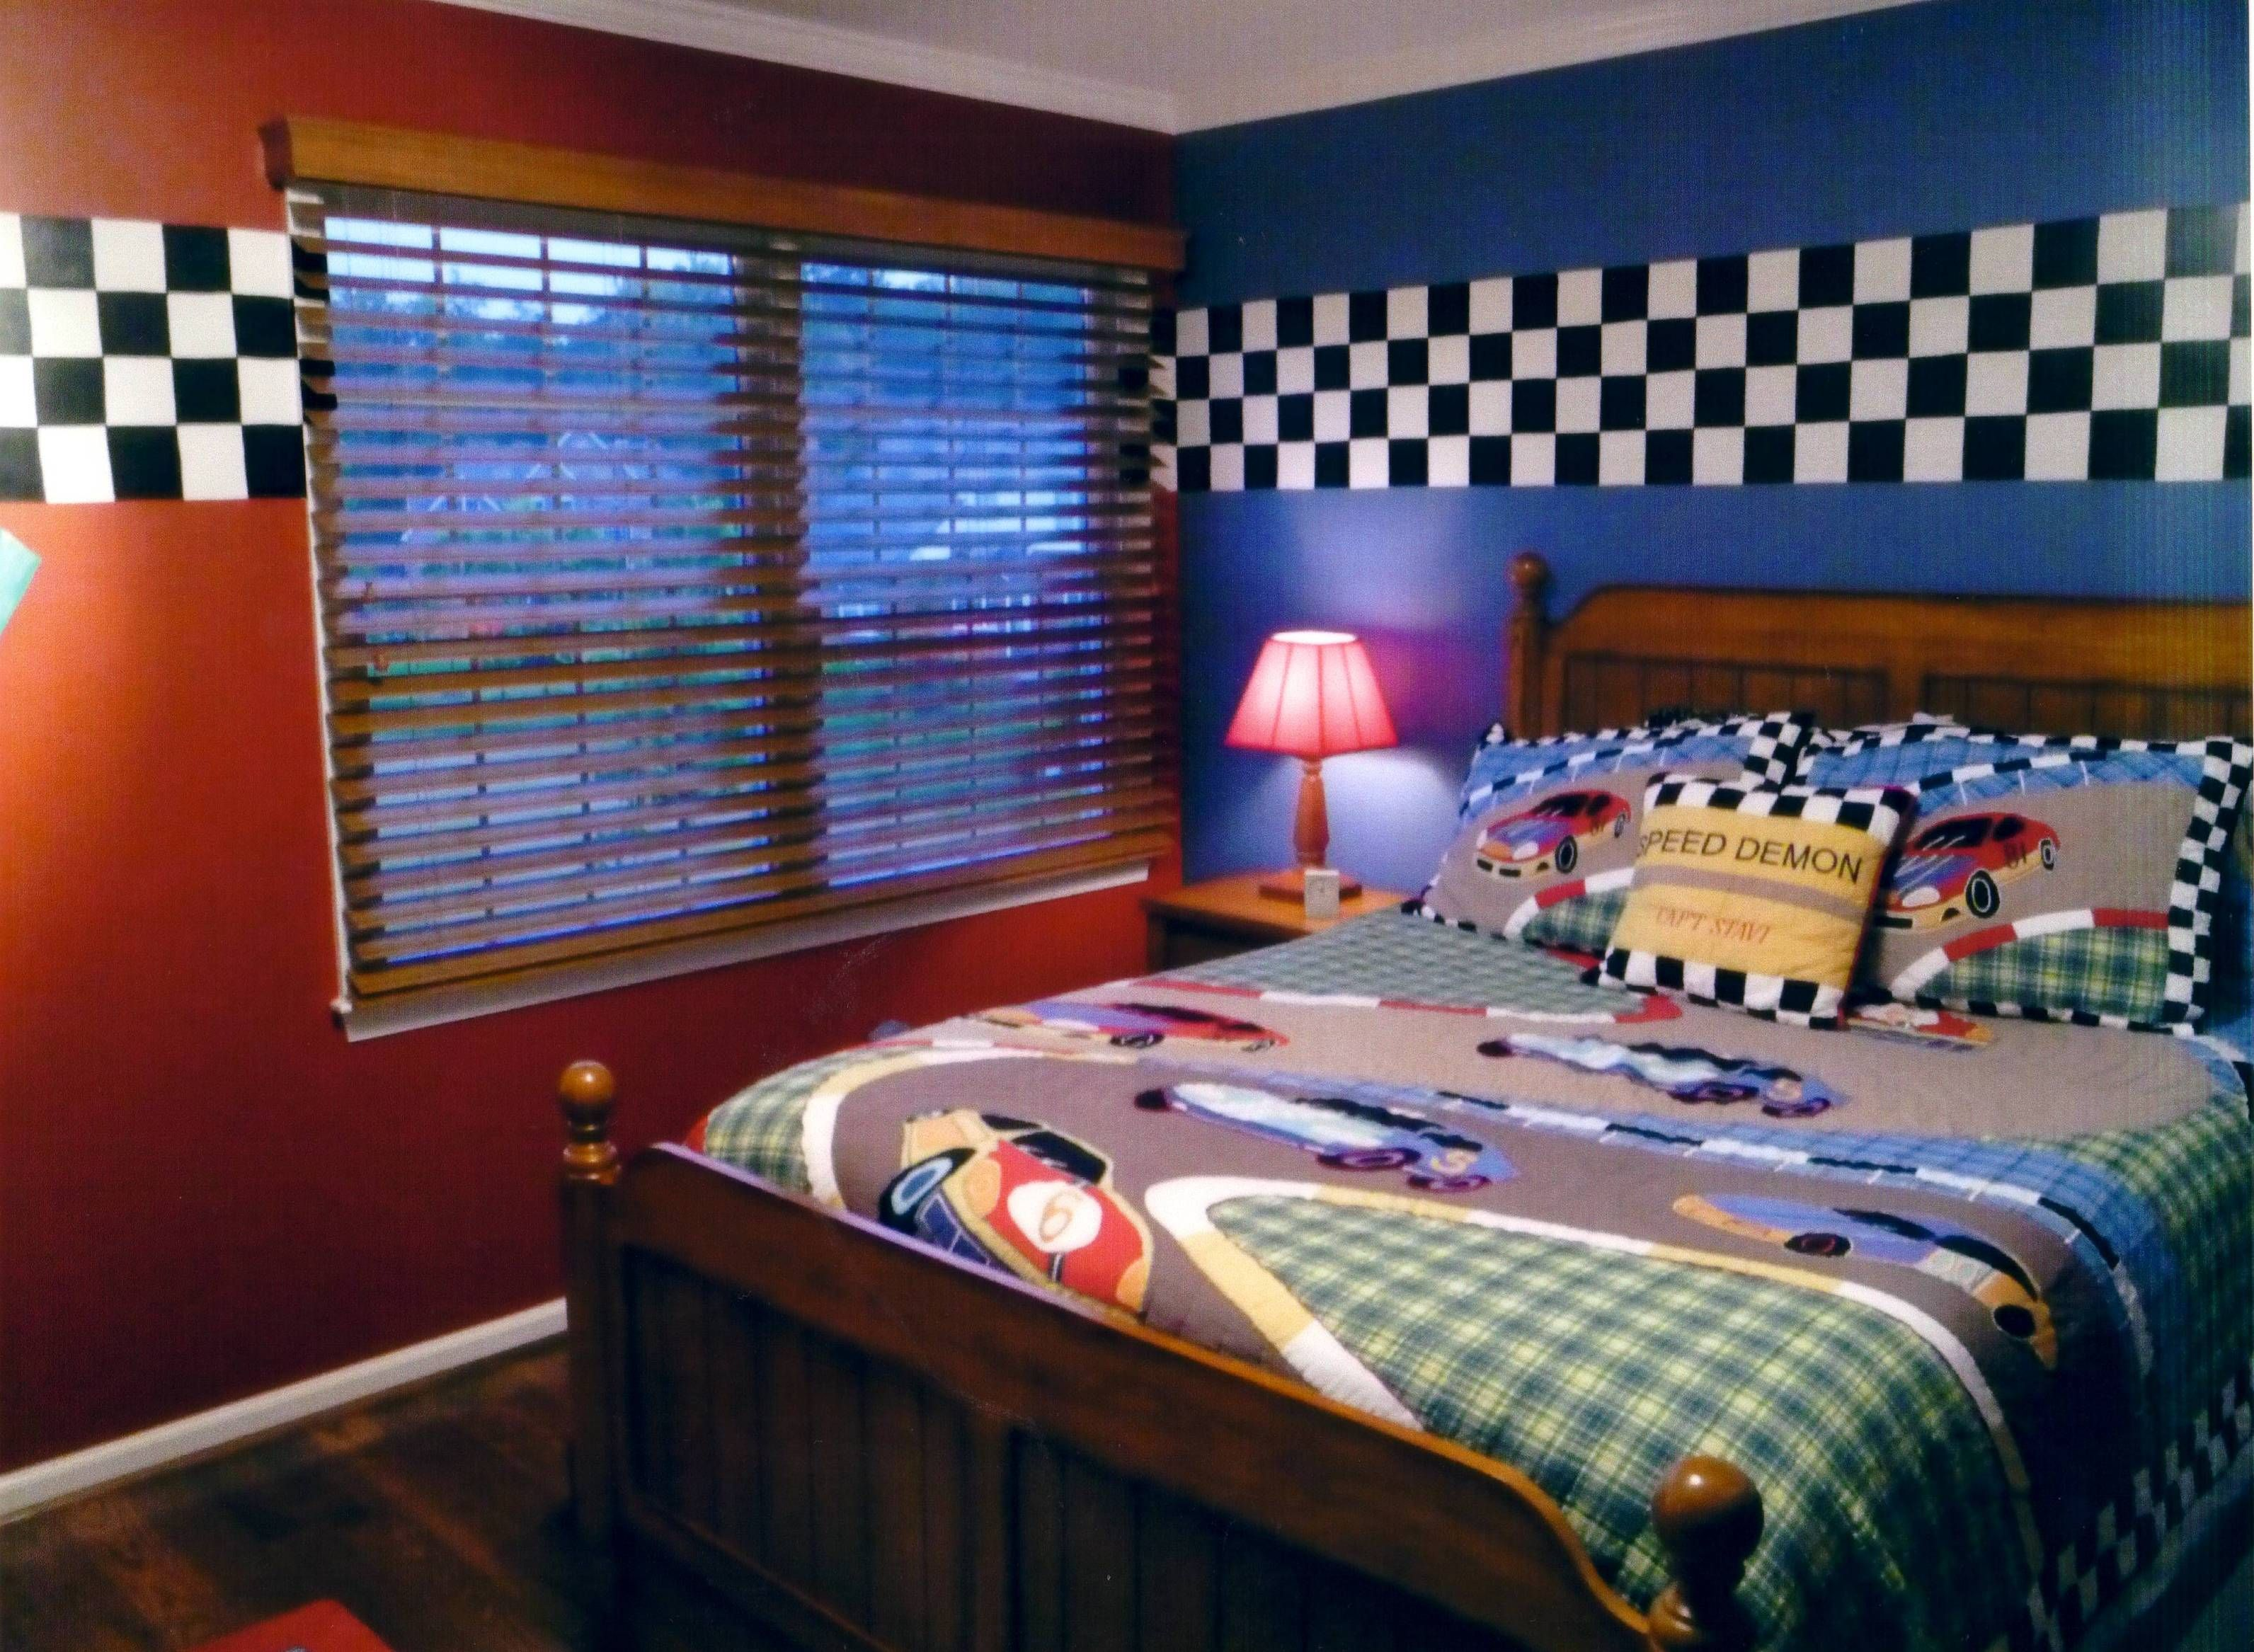 Superior Race Car Bedroom   Love The Paint And Checkered Border!